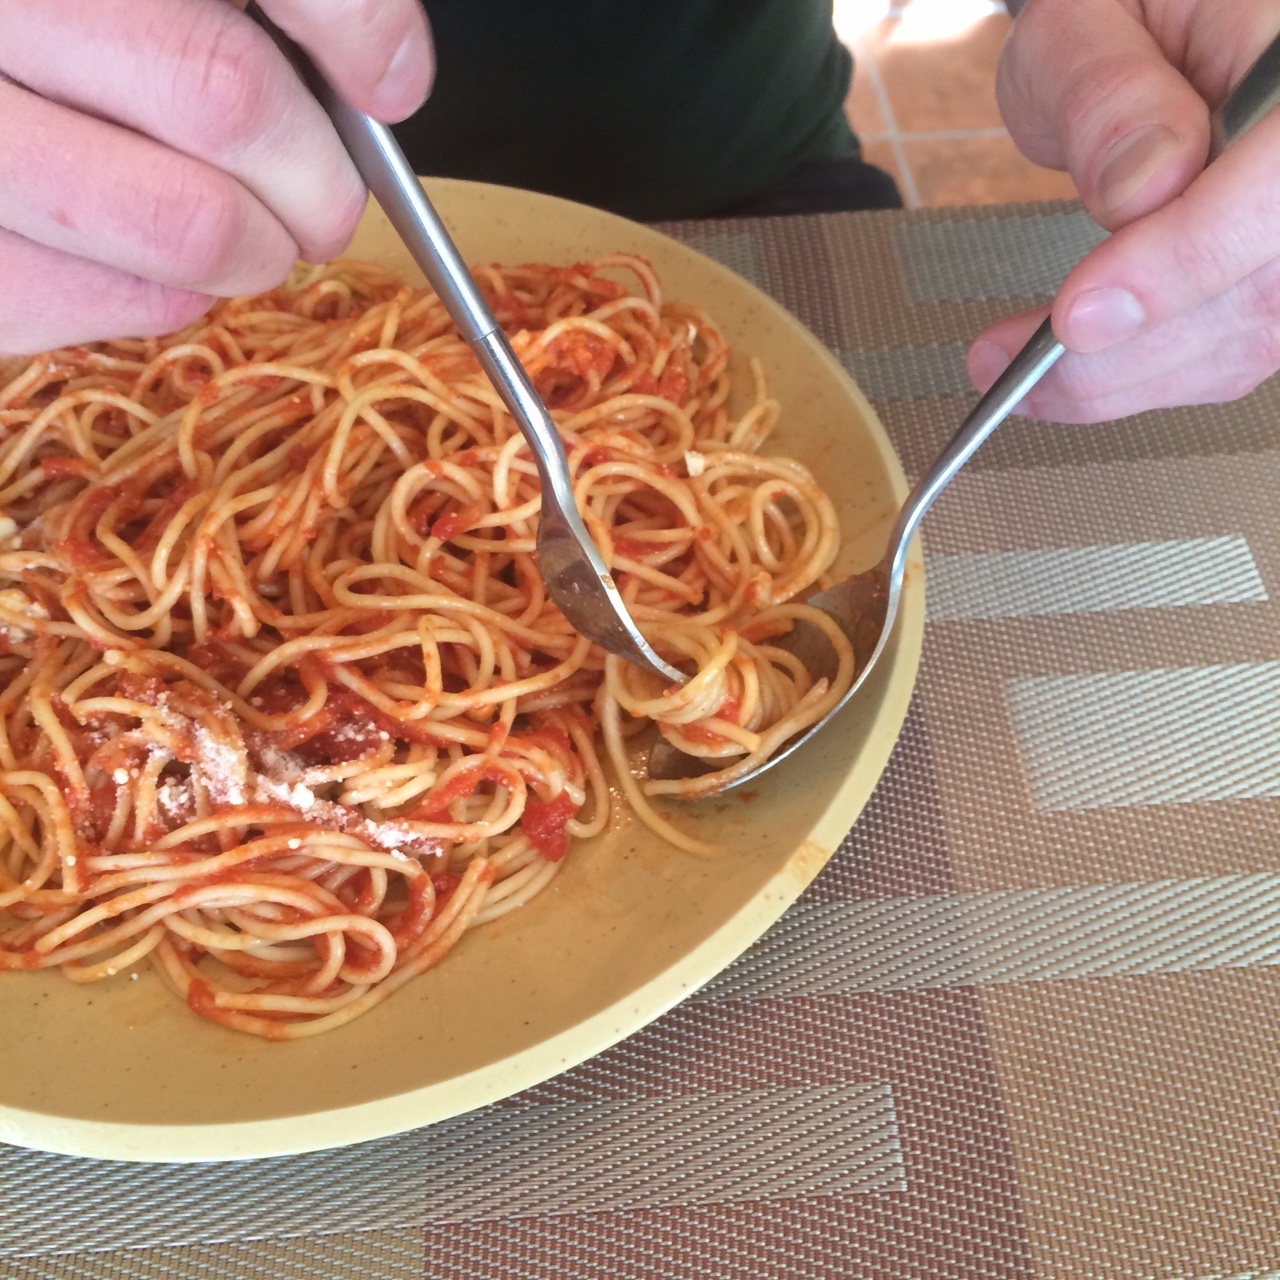 Using a spoon to put spaghetti on a fork